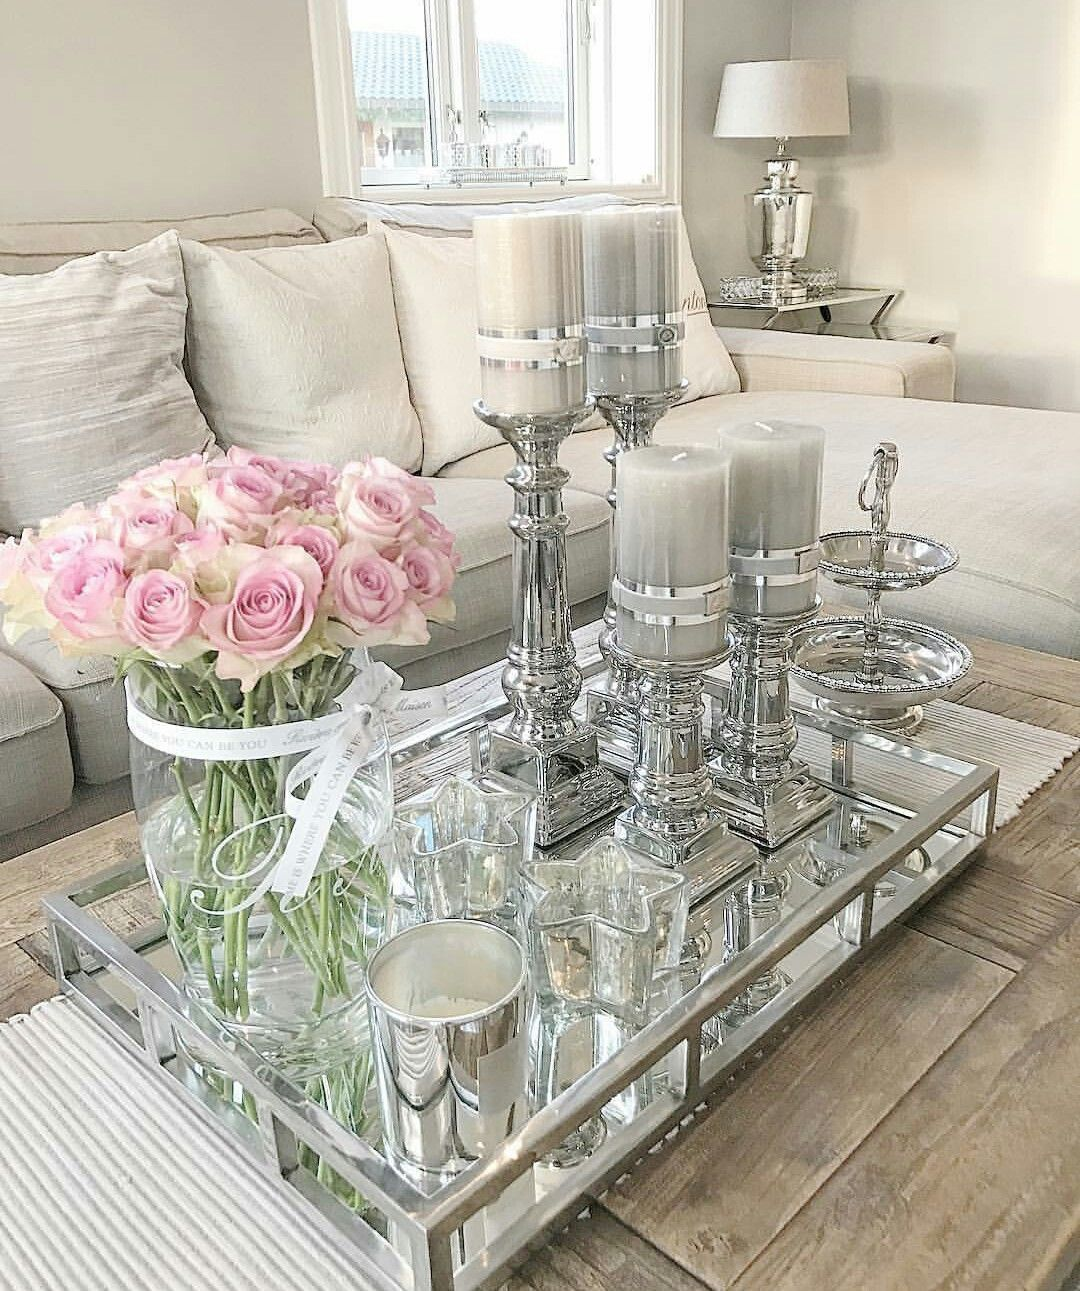 Are You A Fan Of Silver Maison Valentina Presents You With Some Inspirations For The Heart Of Your Home See M Table Decor Living Room Living Decor Room Decor #silver #tables #for #living #room